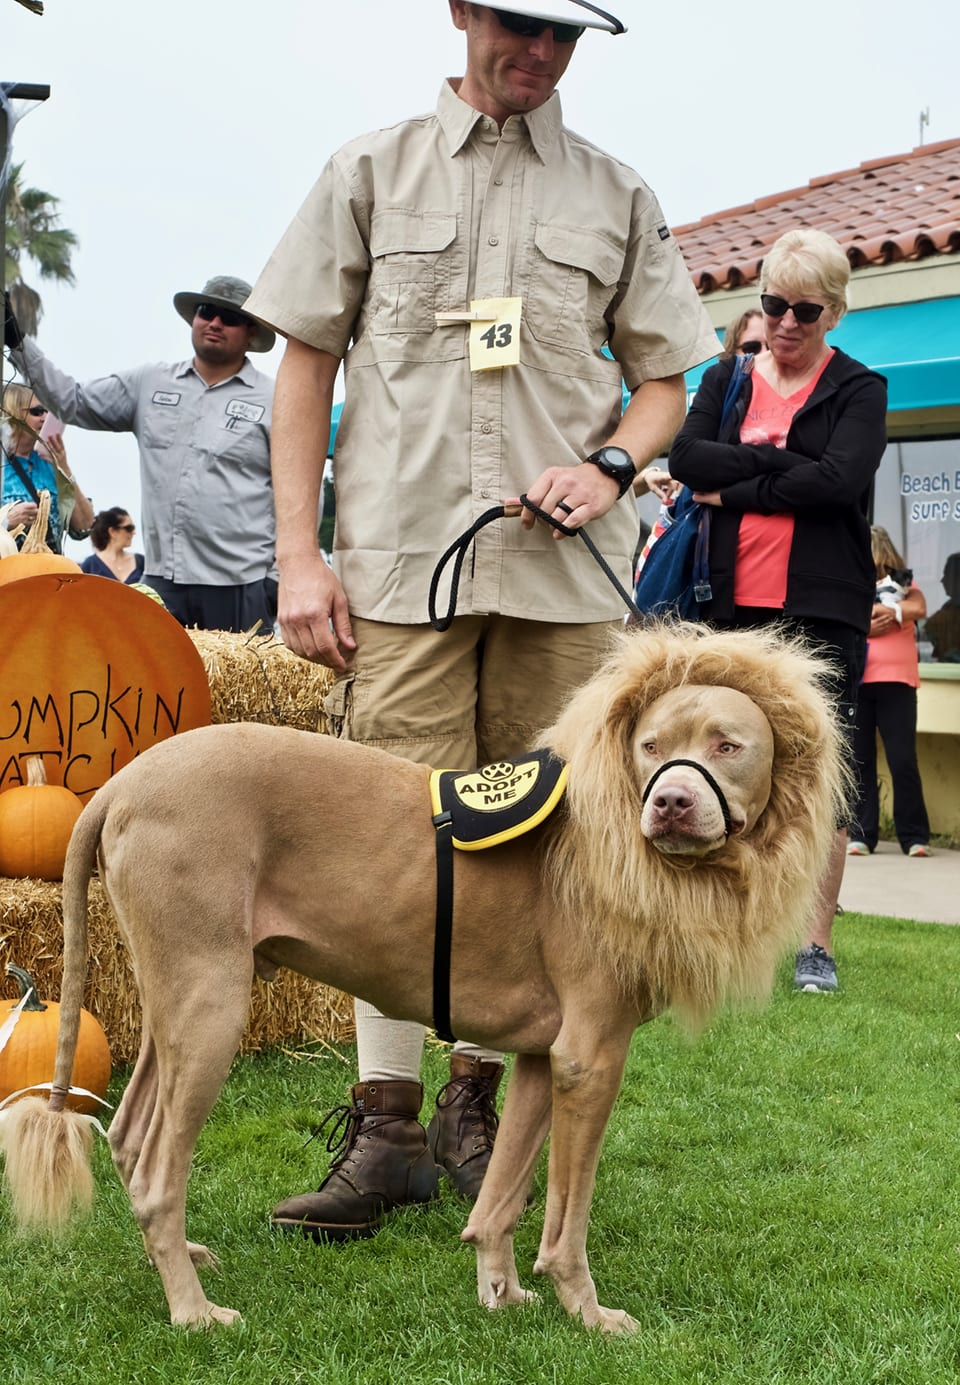 a dog in a dog costume contest dressed as a lion, with a big furry main